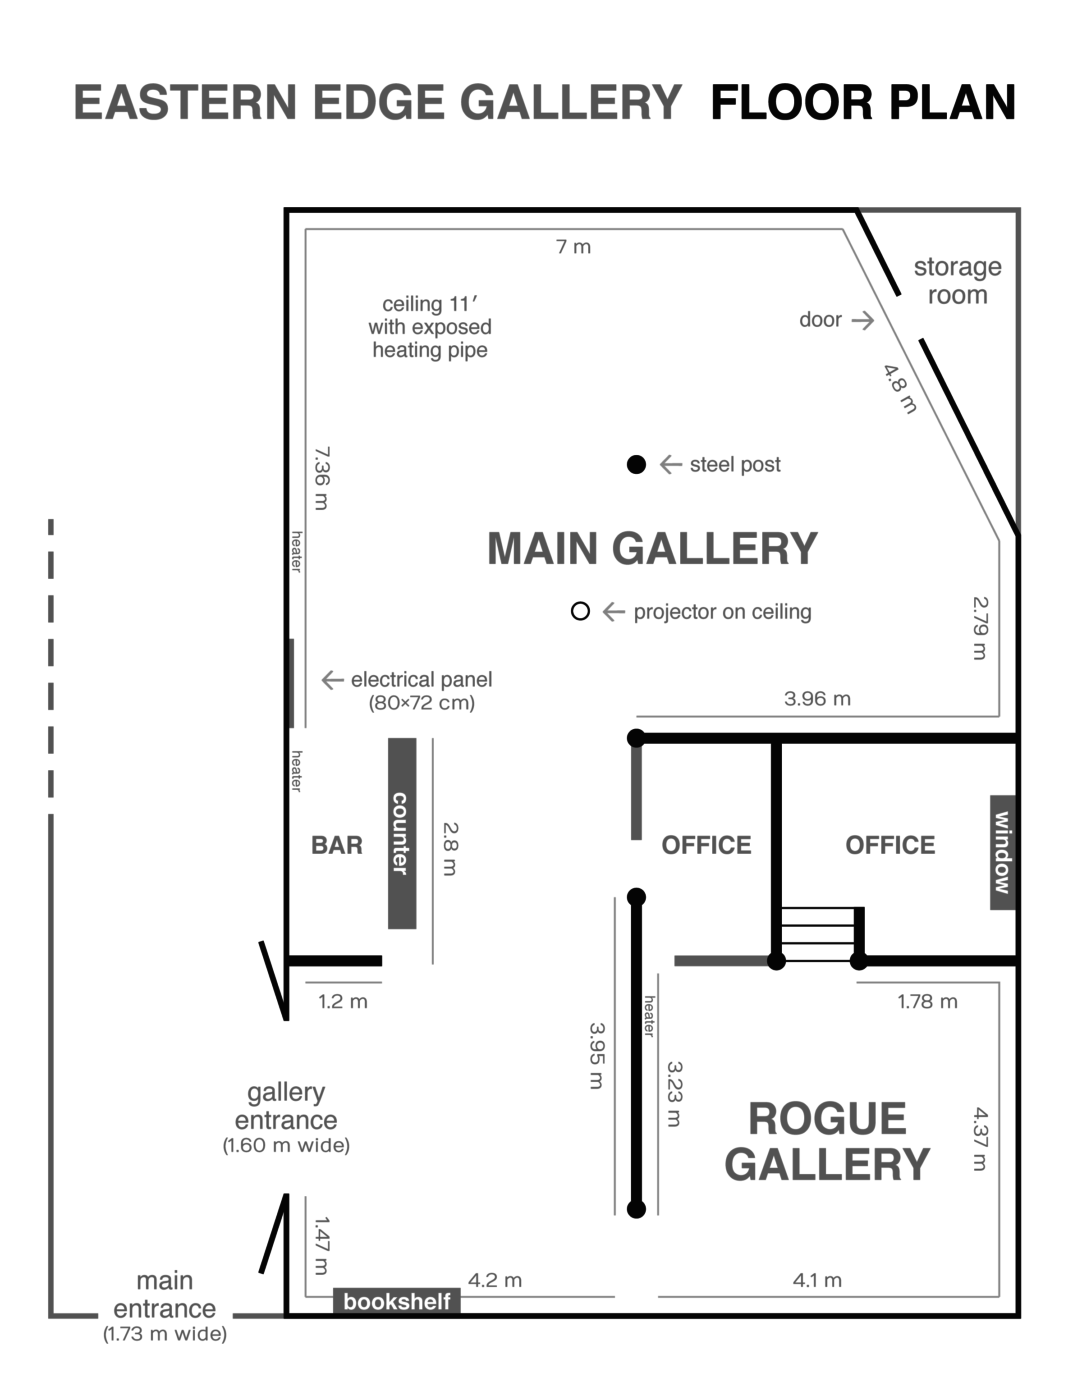 Eastern Edge Gallery Floor Plan 2018